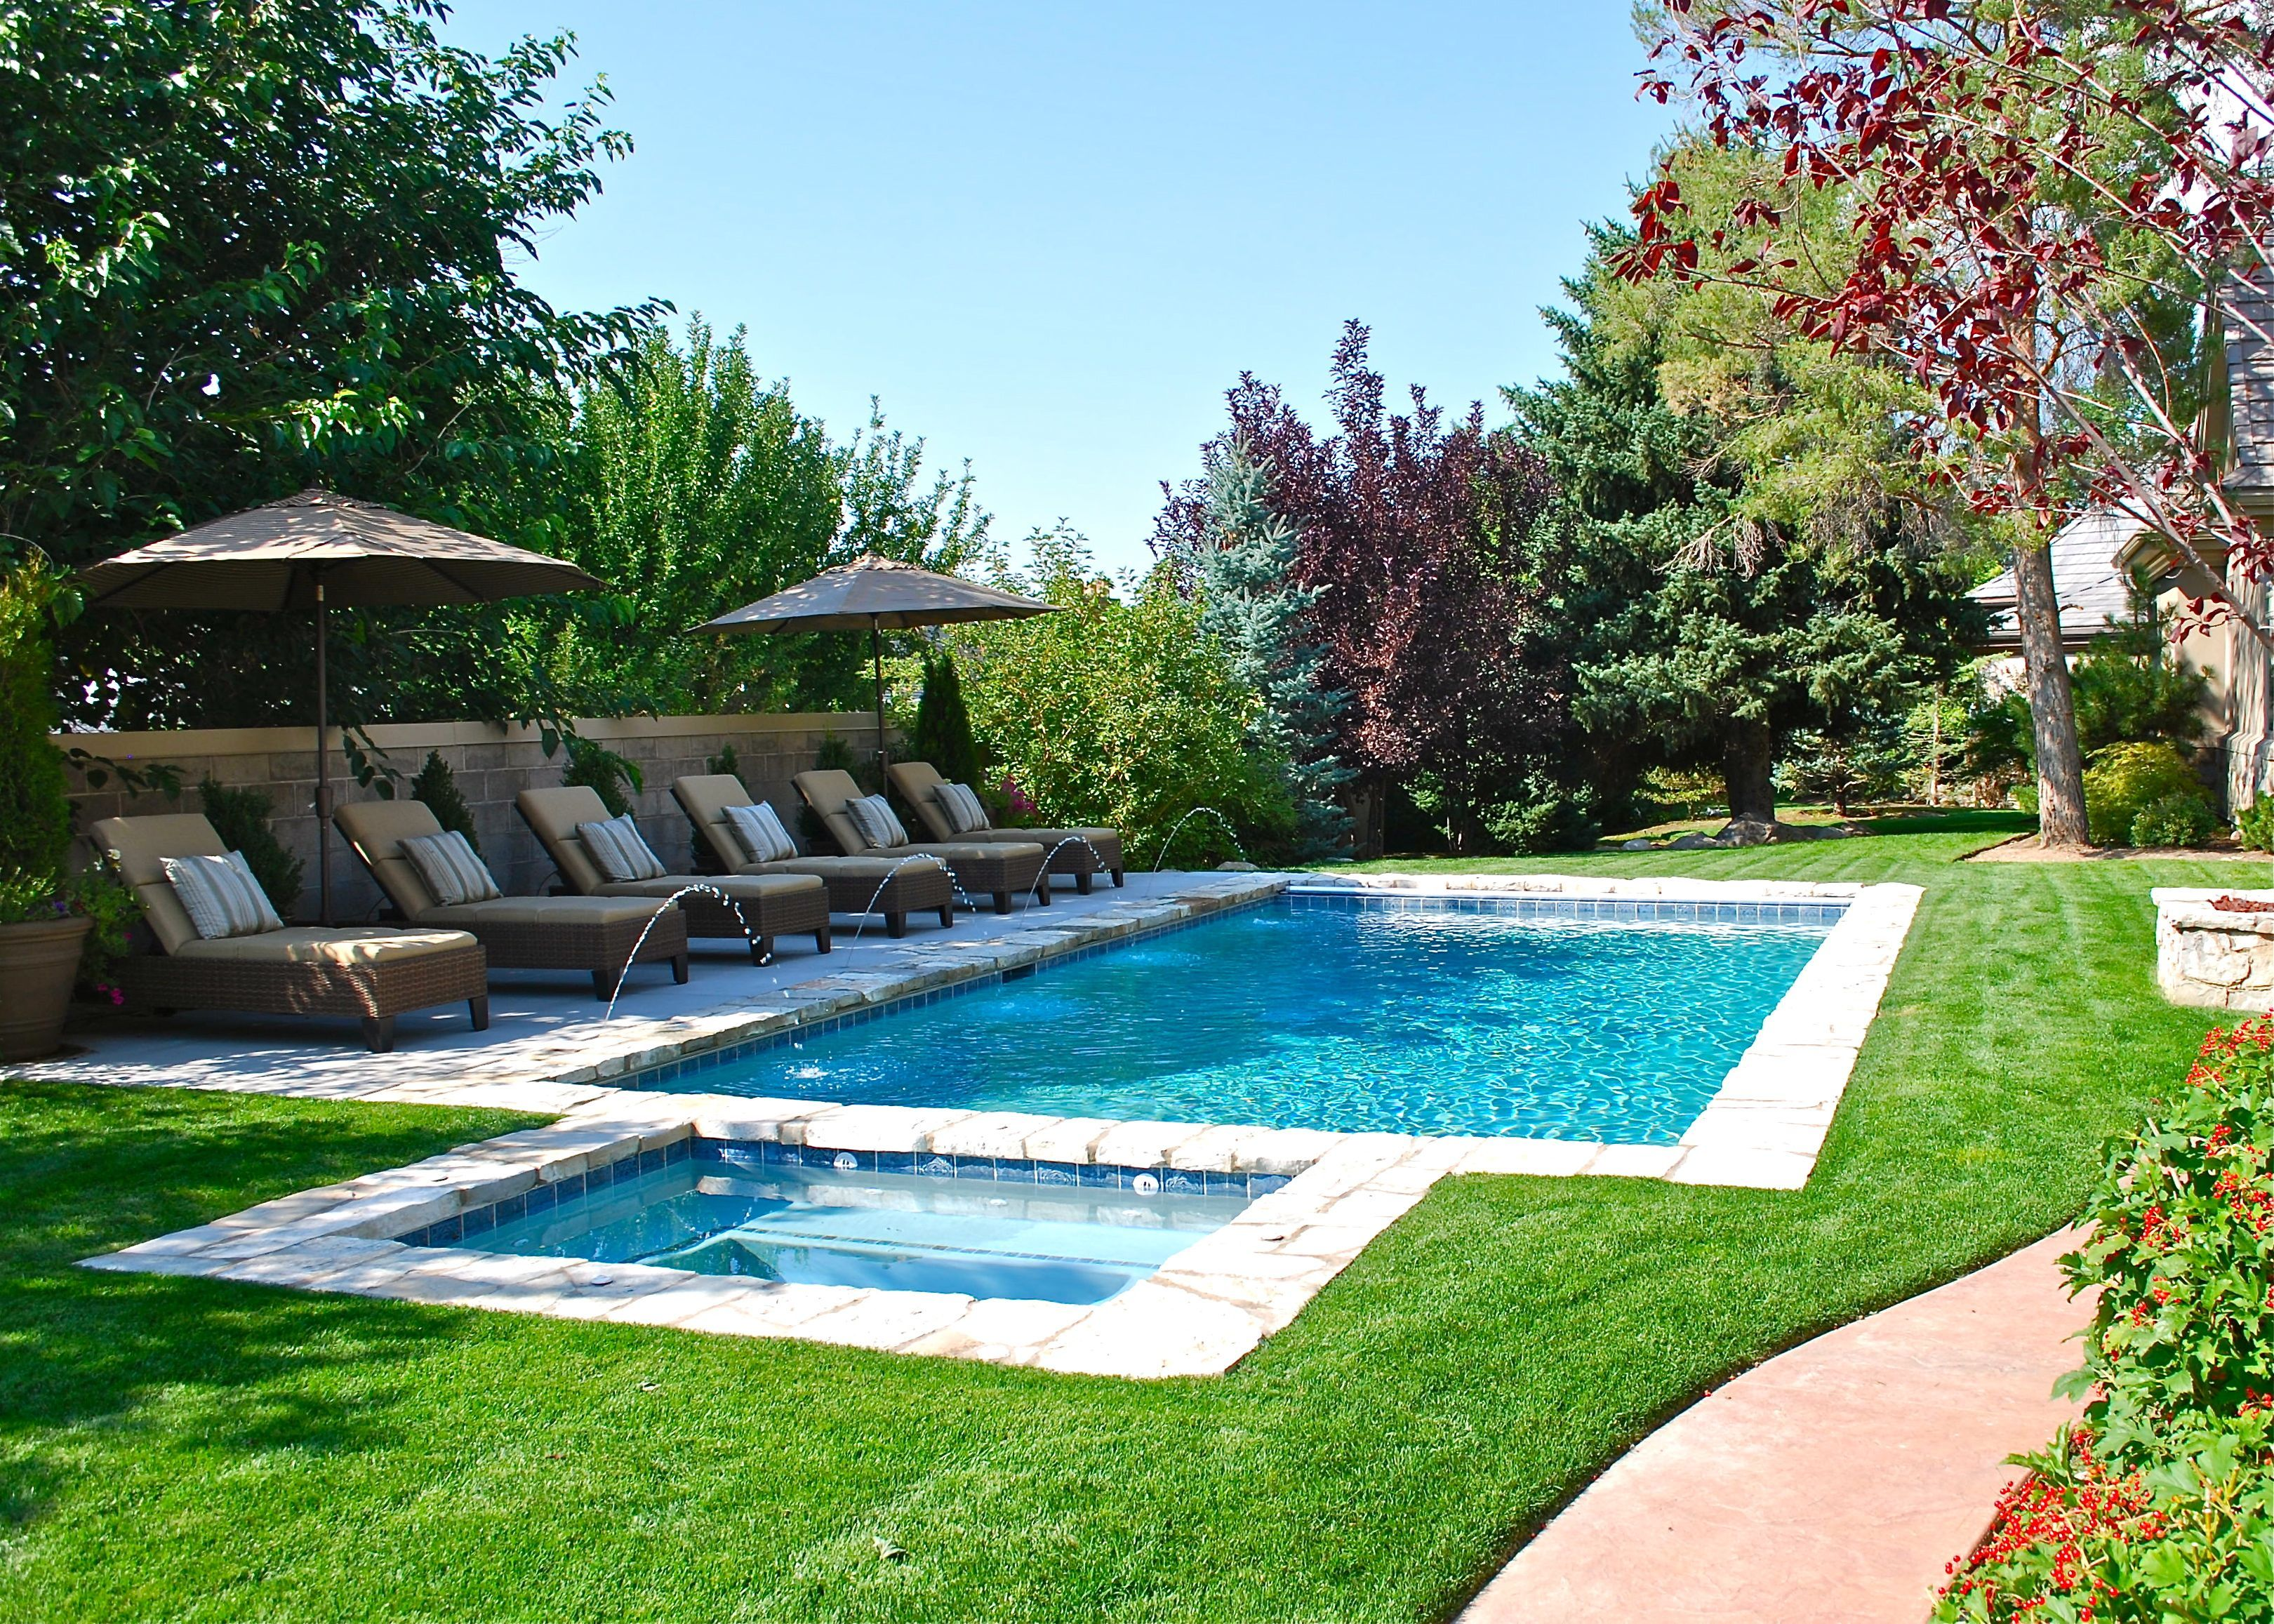 Backyard swimming pool with minimal decking deckjets and for Garden pool landscaping